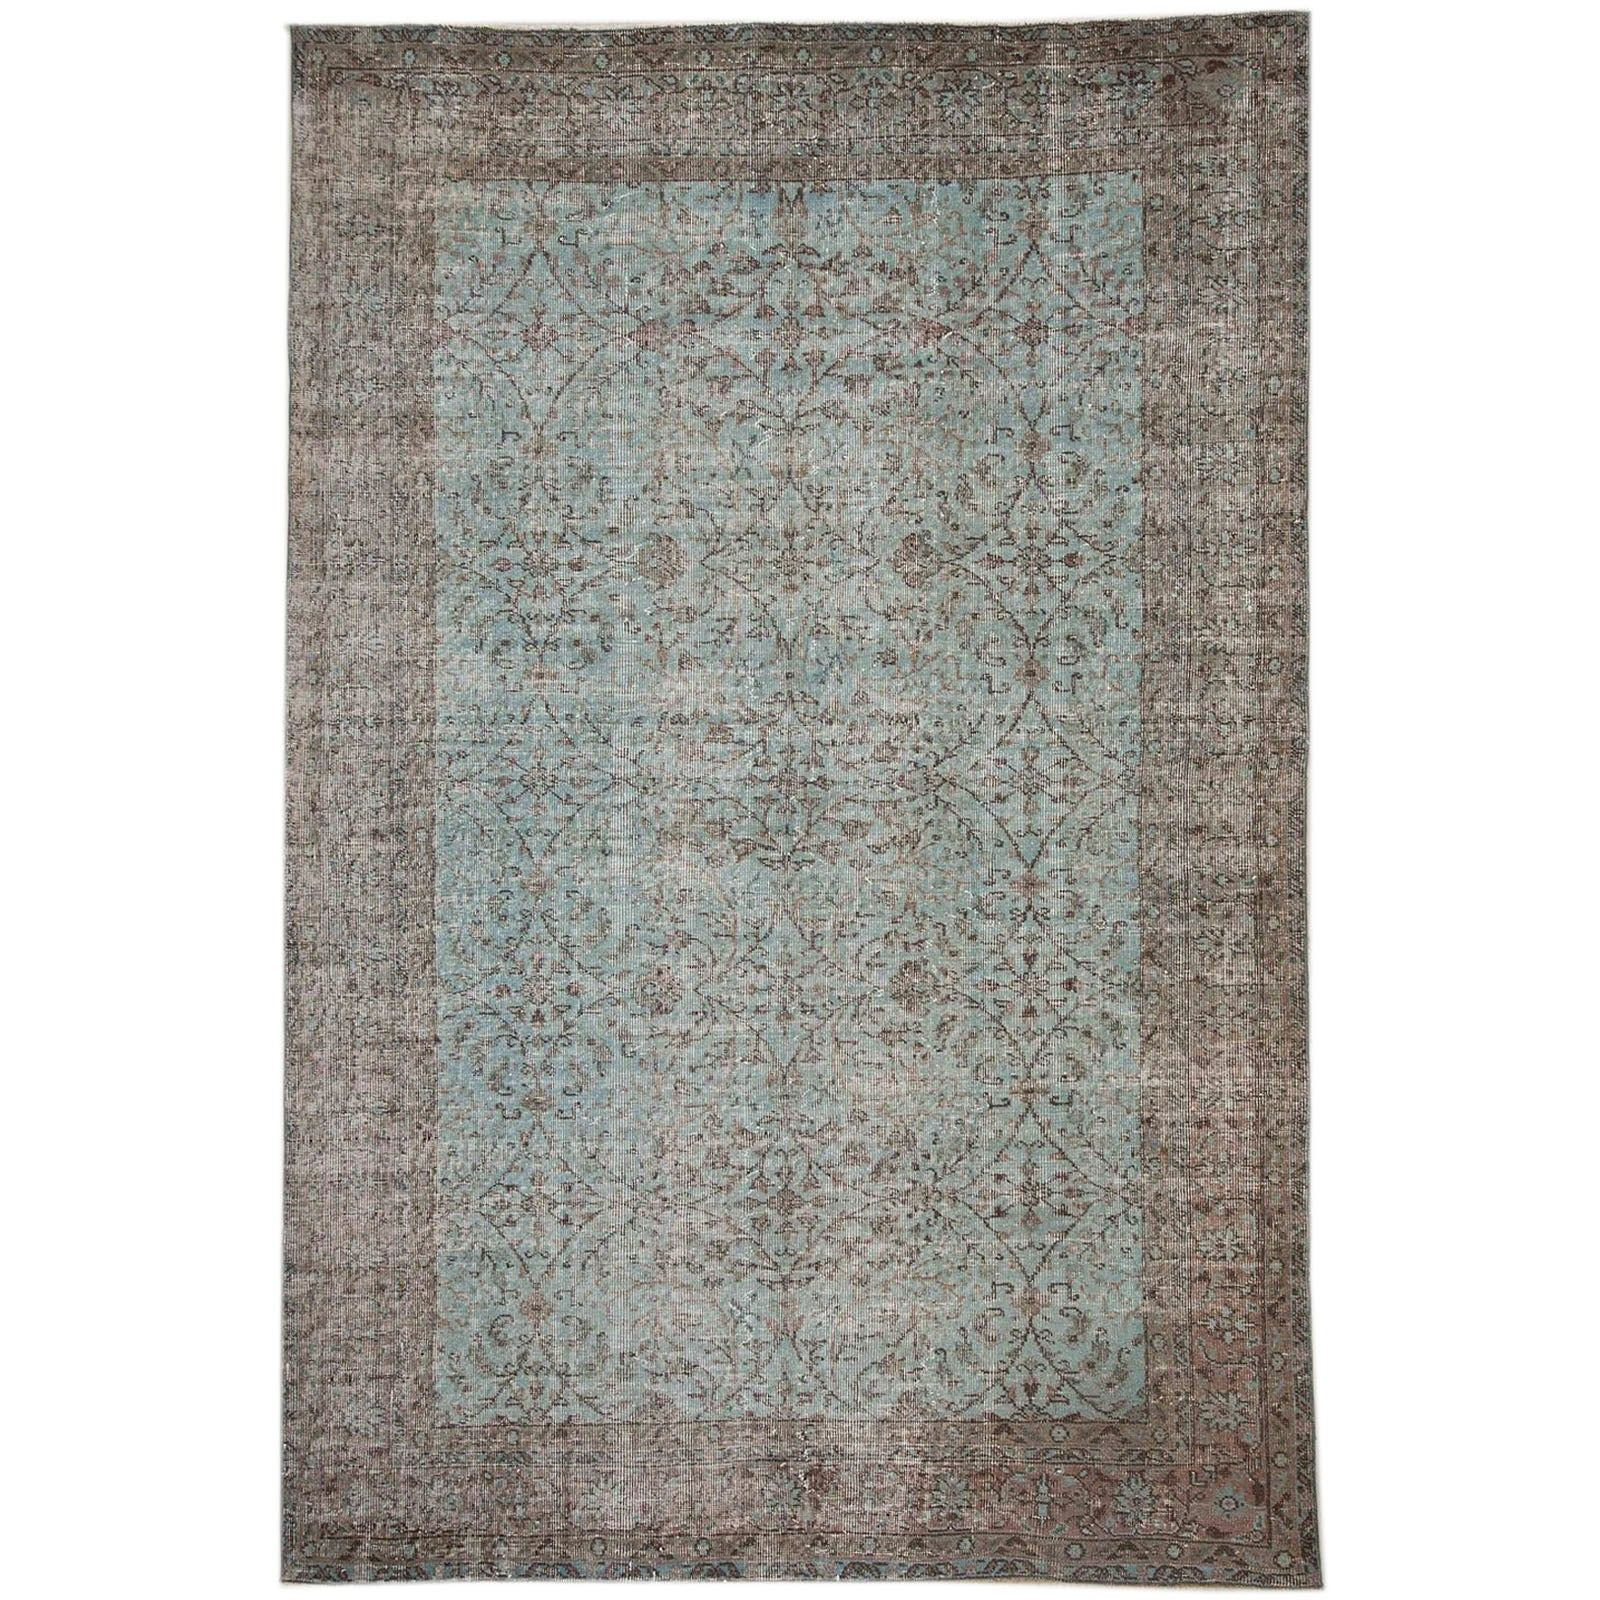 Hali 191X288  CM Bursa Handmade over dyed rug  2567 -  191*288 سجاده بورصة صناعة يدوية على بساط مصبوغ - Shop Online Furniture and Home Decor Store in Dubai, UAE at ebarza